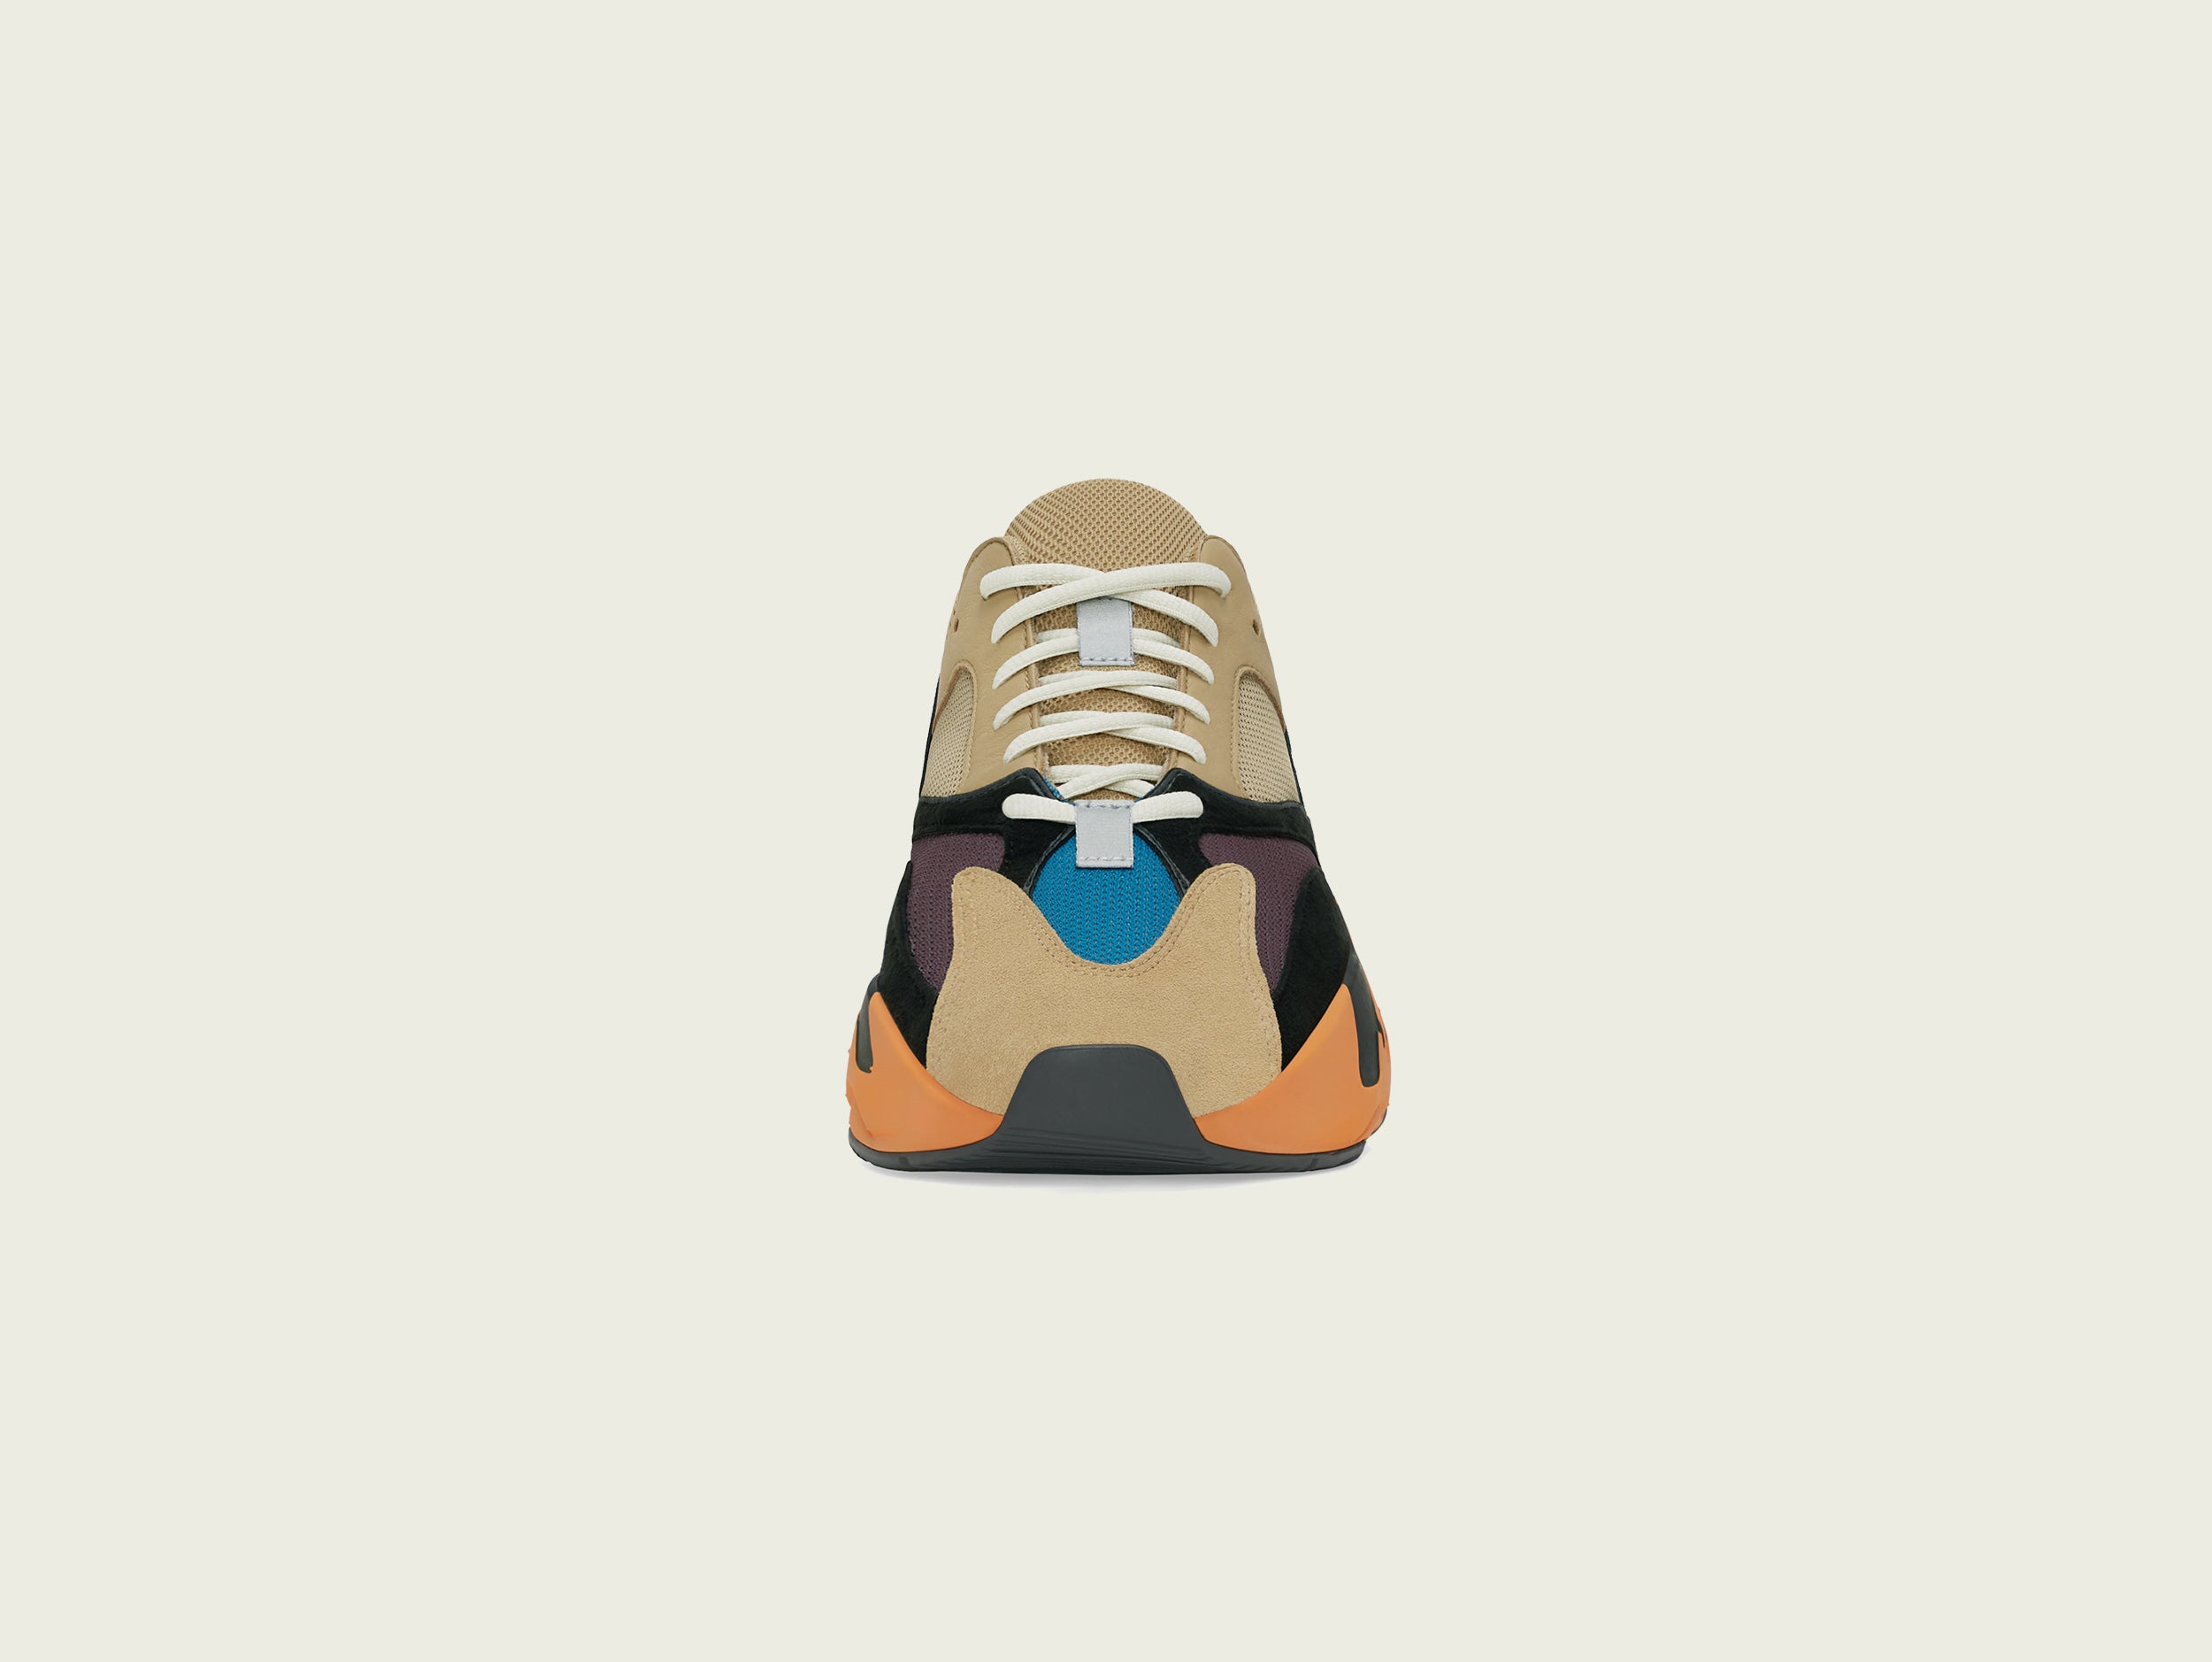 adidas Yeezy Boost 700 (Enflame Amber/Enflame Amber/Enflame Amber)